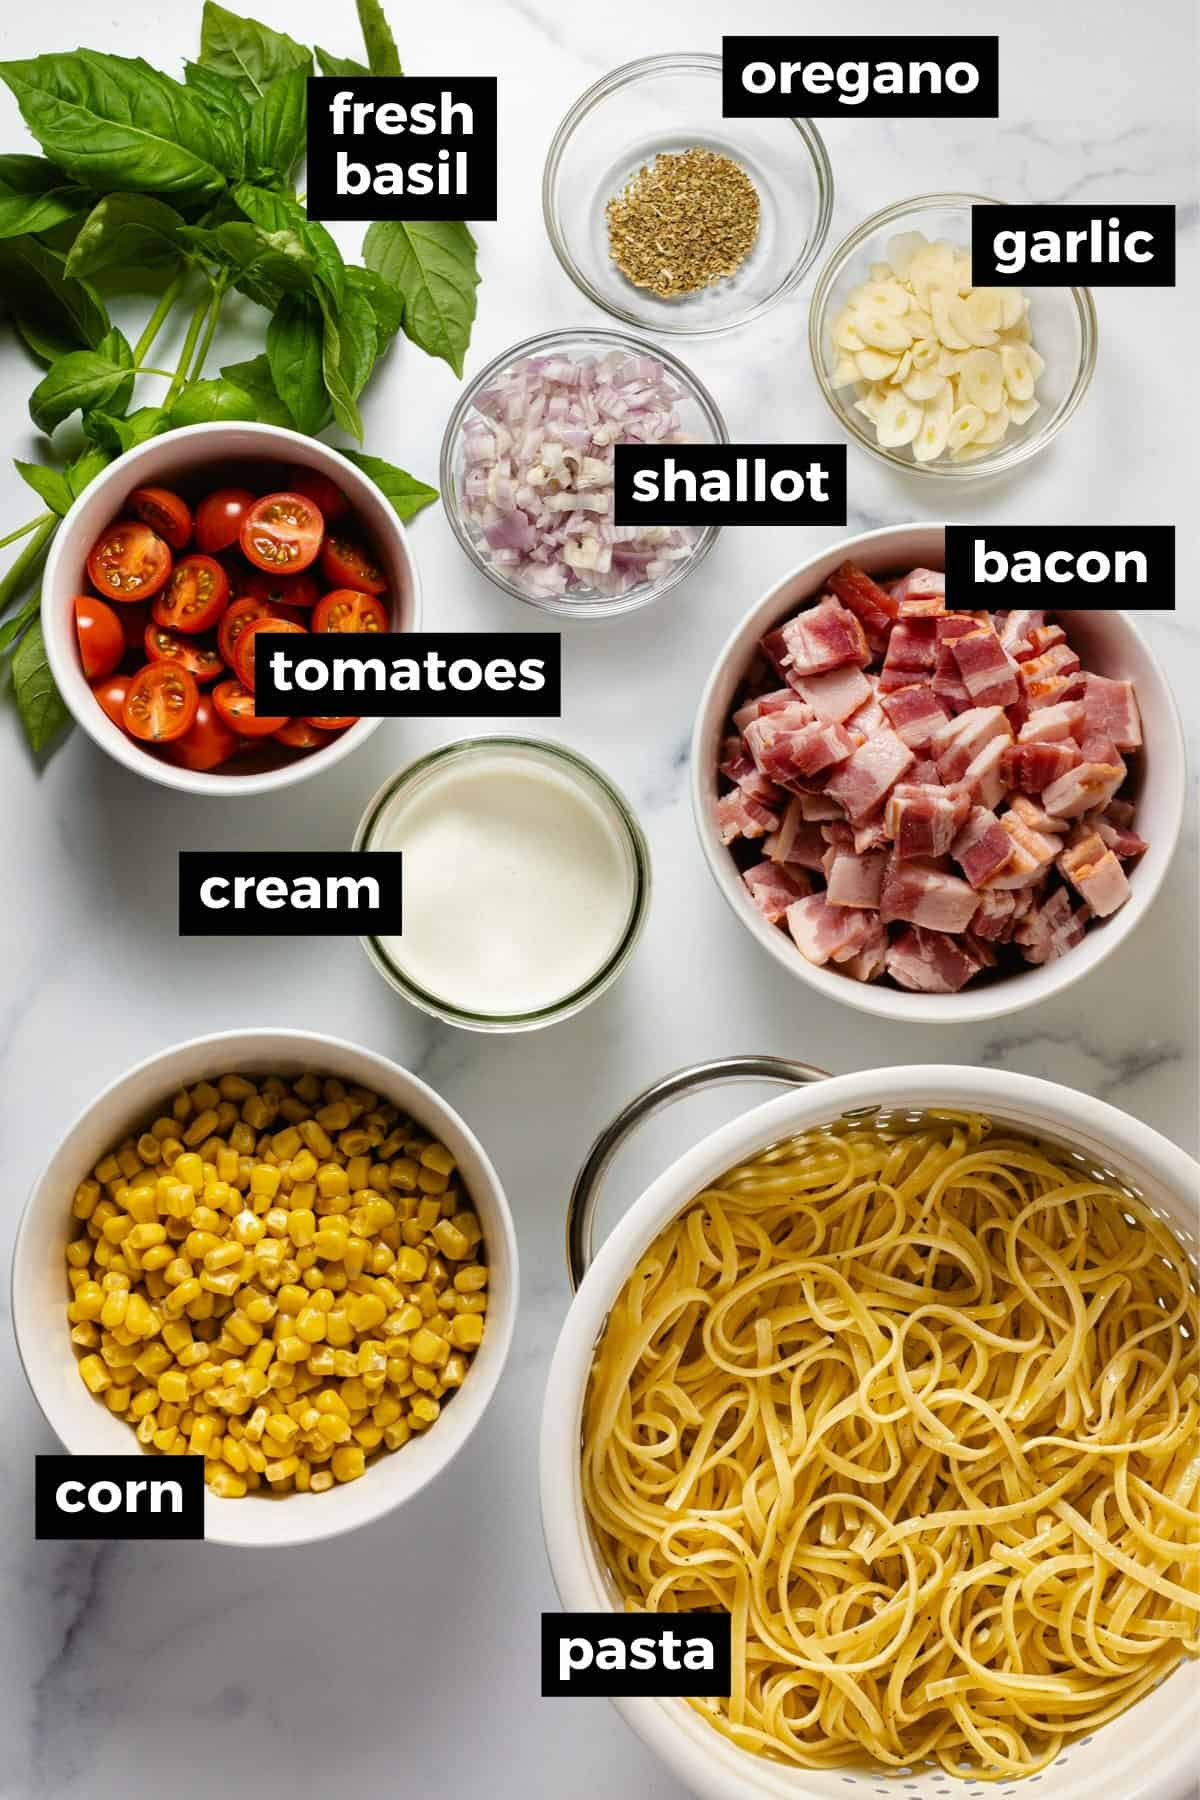 White marble counter top with bowls of ingredients to make creamy corn pasta